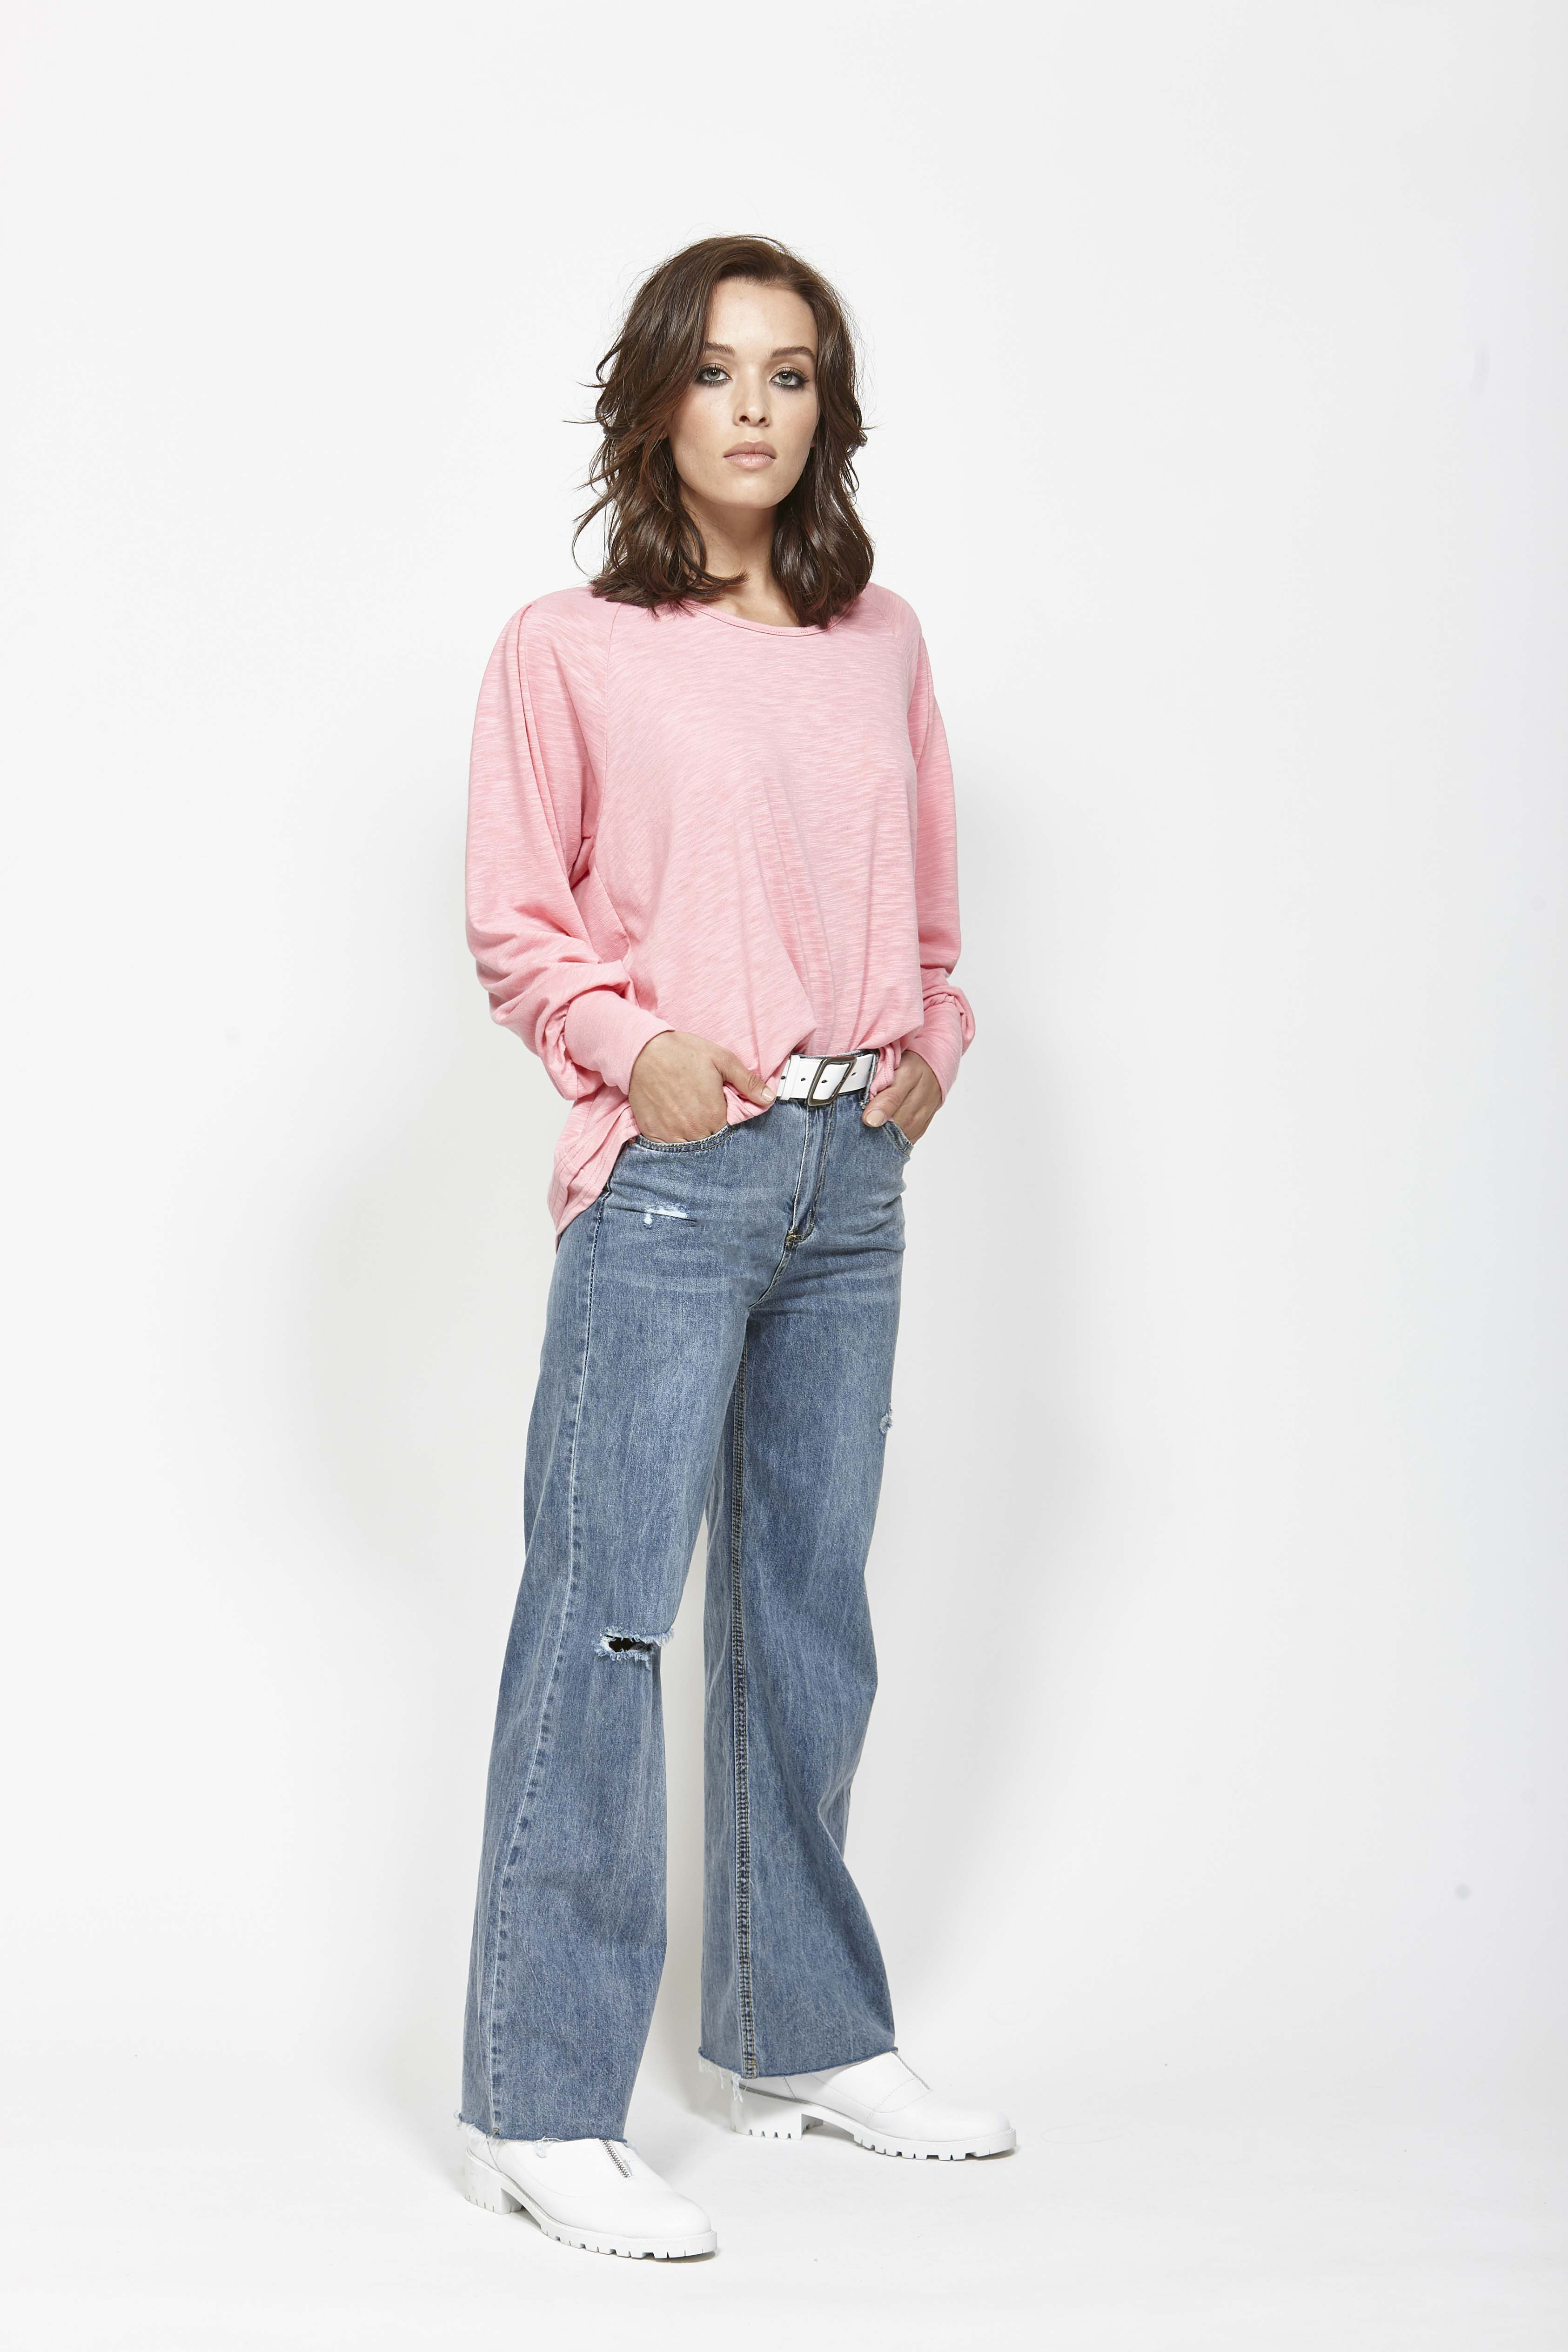 LEO+BE LB1379 Pleat It Top, RRP$119.00 & LEO+BE LB1380 Wide Leg Jean, RRP$135.00